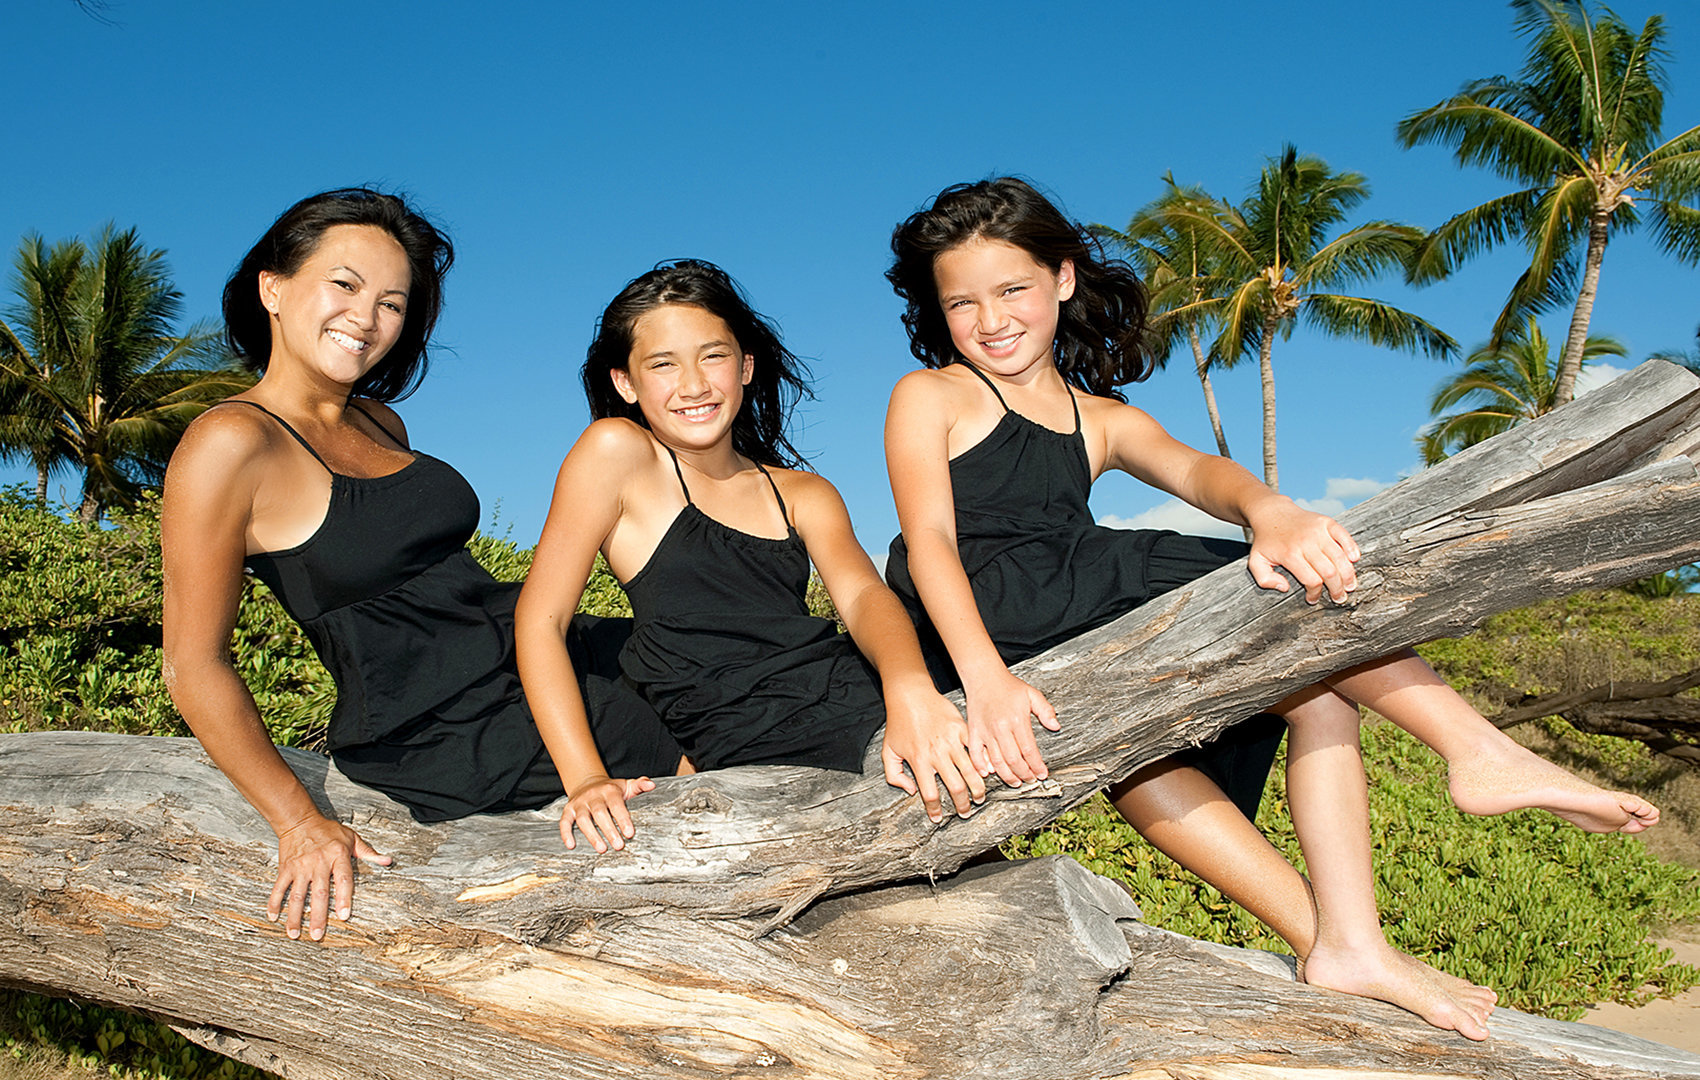 Maui Photographers | Oahu Photographers |  Kauai Photographers | Big Island Photographers | Family | Weddings | Couples.